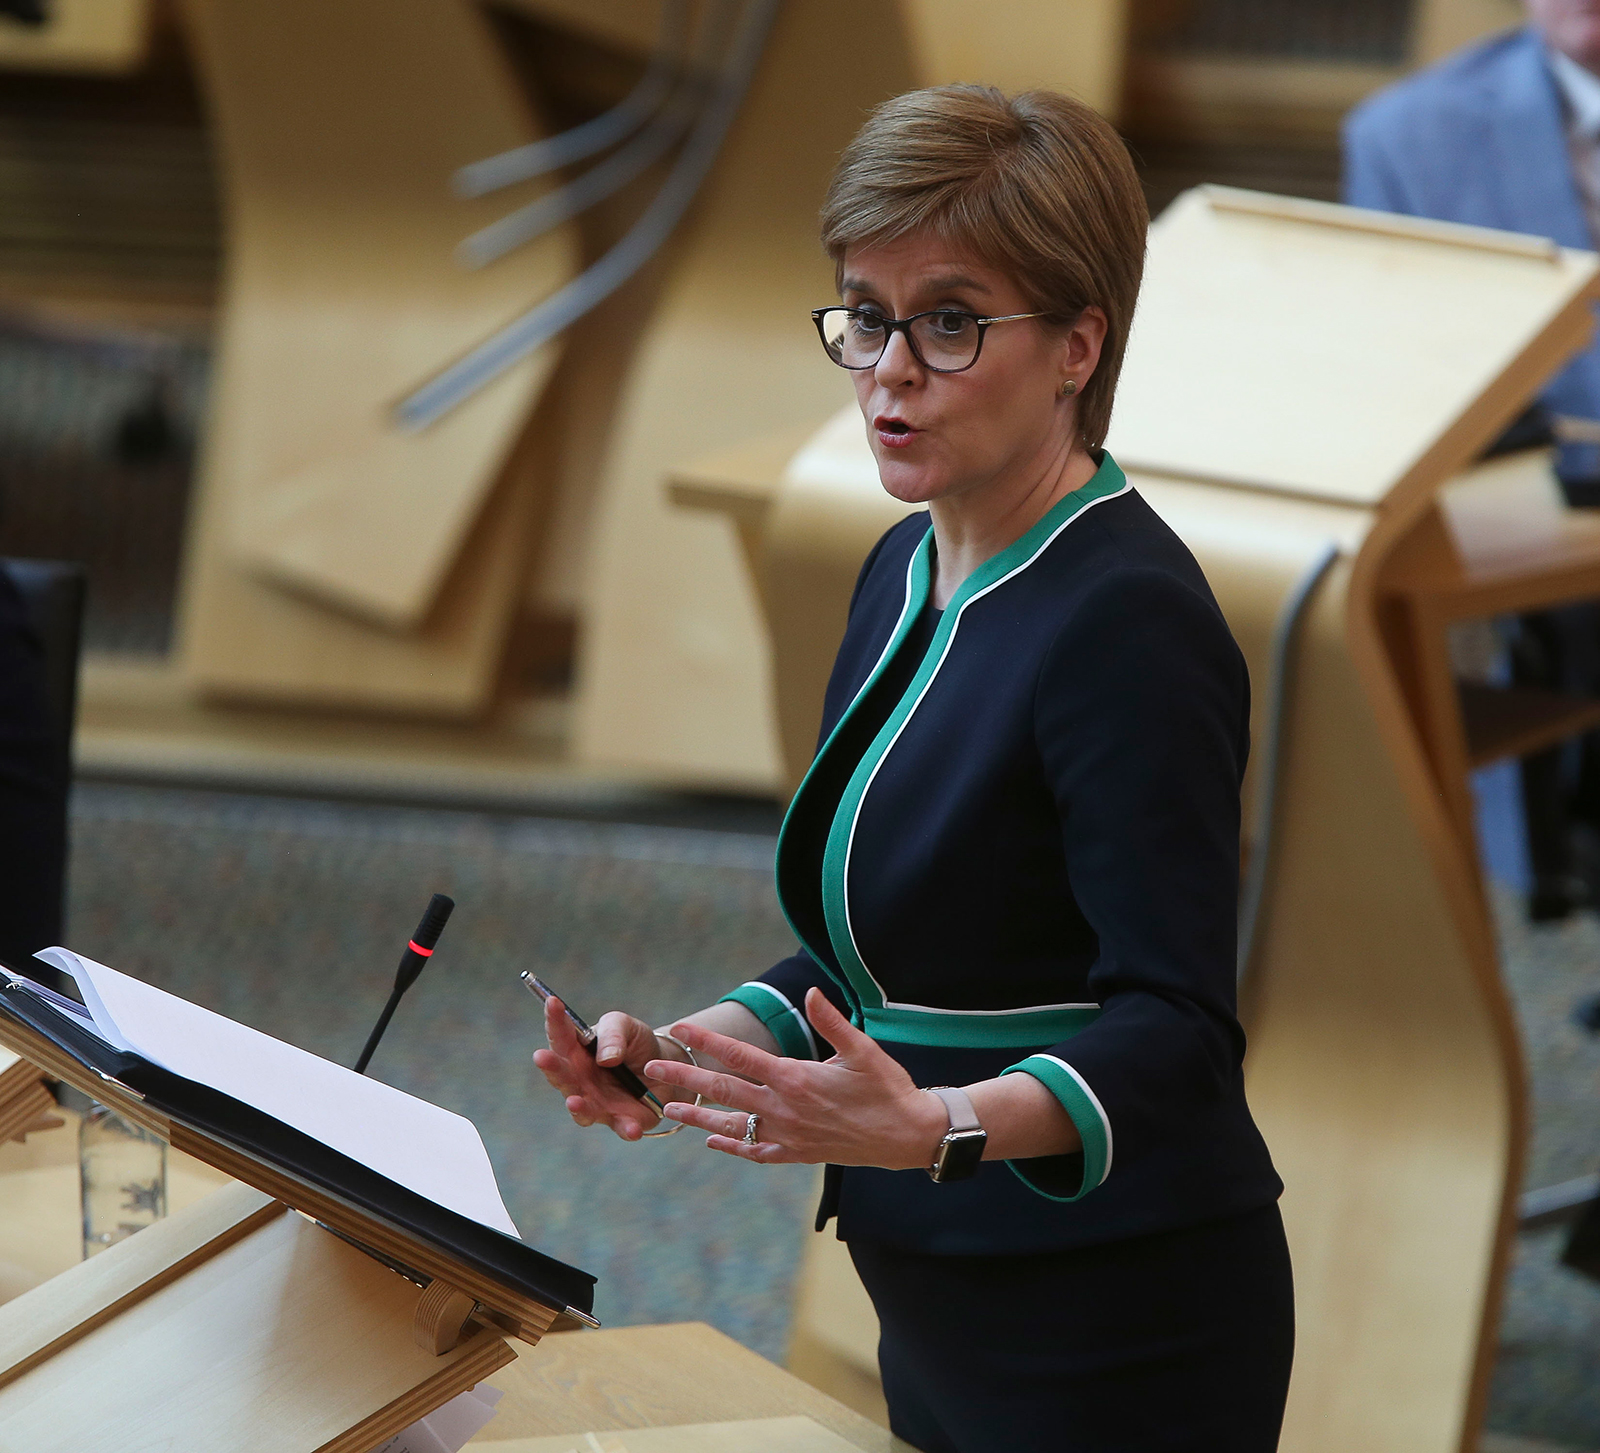 Nicola Sturgeon, First Minister of Scotland, at the Scottish Parliament Holyrood on April 21, in Edinburgh.